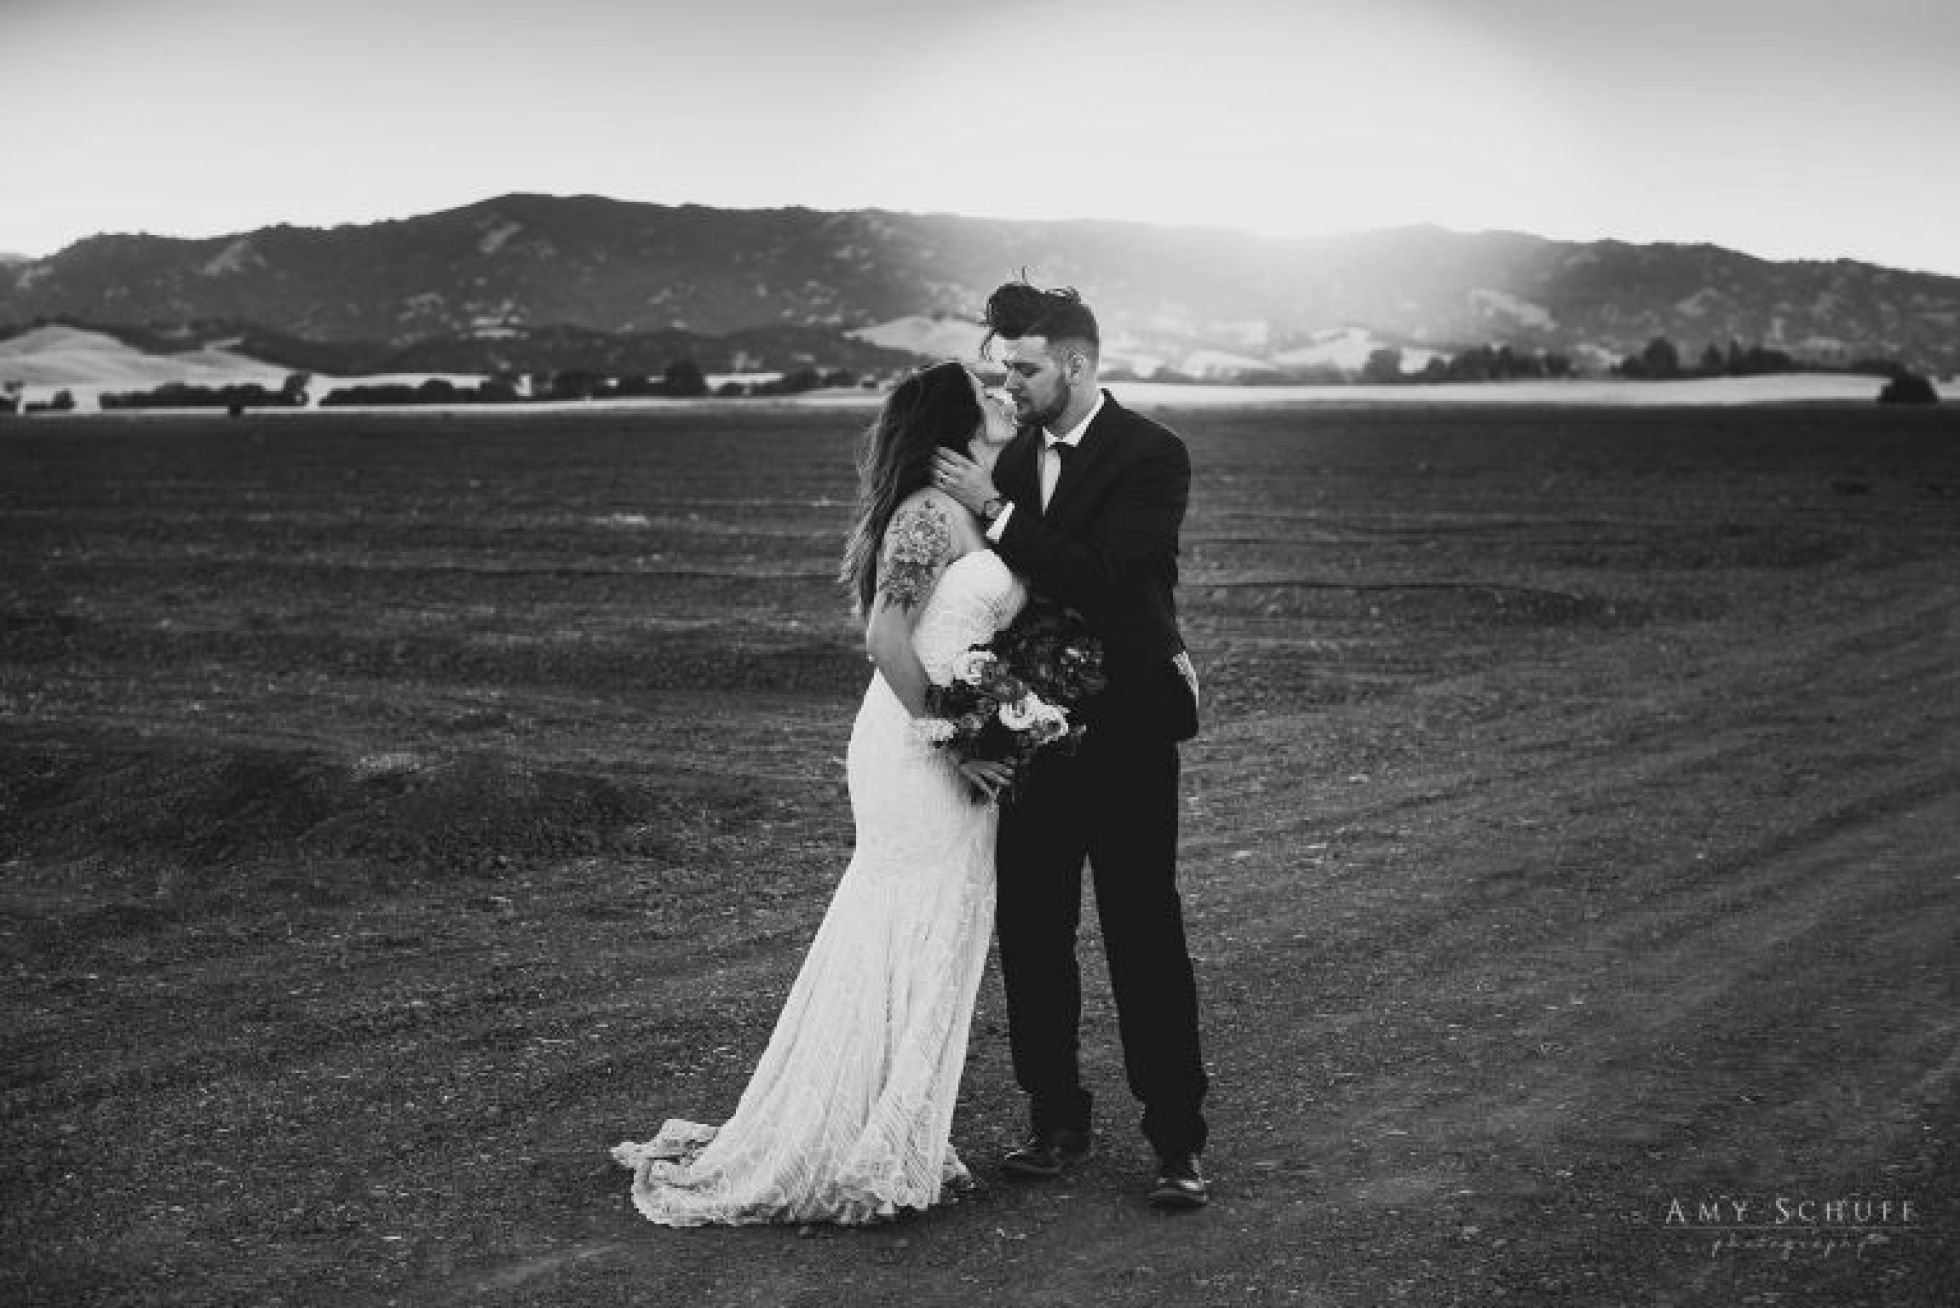 Amy Schuff Photography - Wedding in Woodland, CA